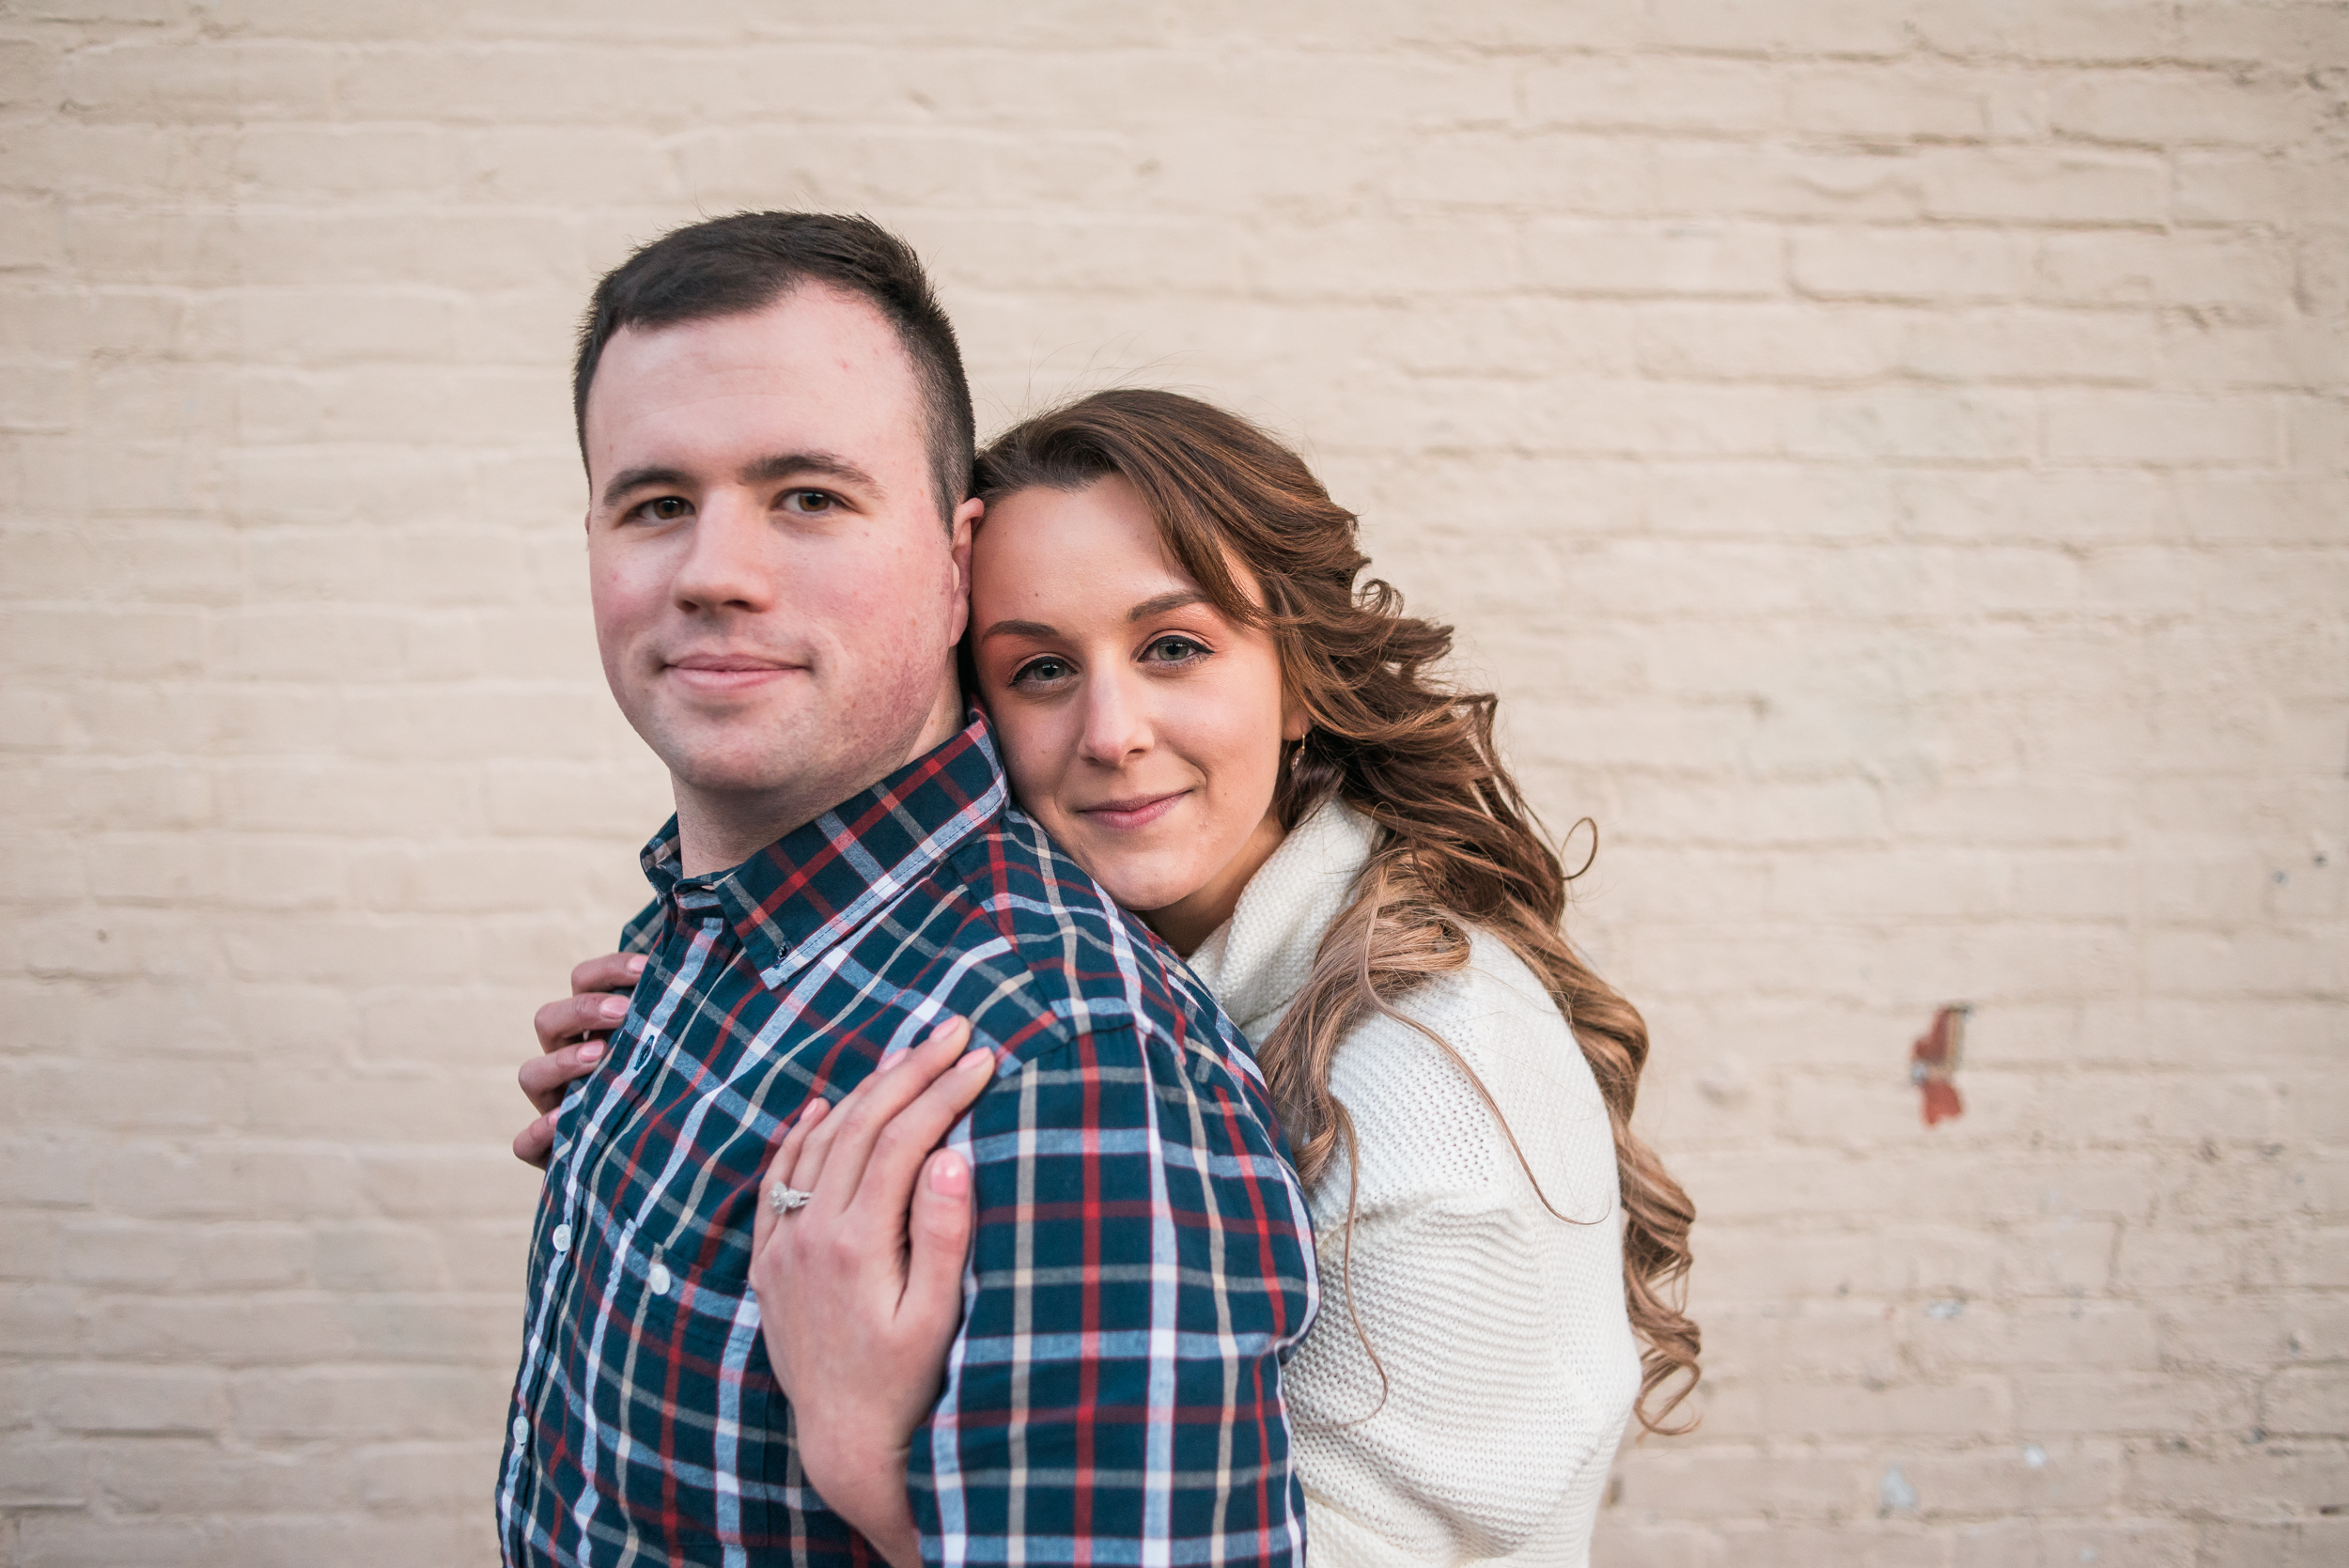 downtown-annapolis-engagement-session-chelsea-blanch-photography-18